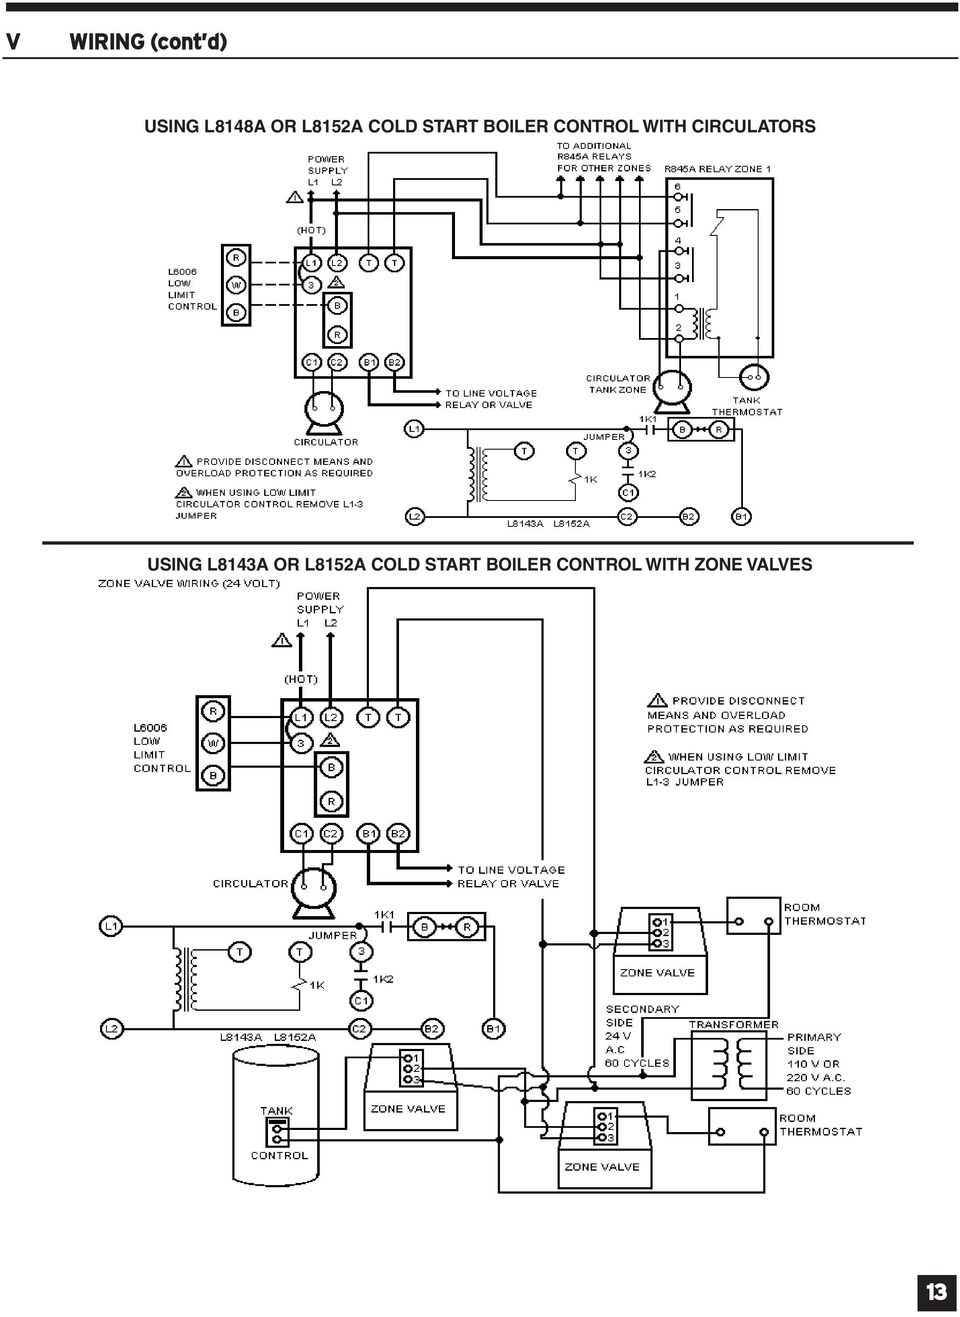 ?????????????????????????????????????????????????????????????? L8143A OR L8152A COLD START BOILER CONTROL WITH ZONE VALVES 13